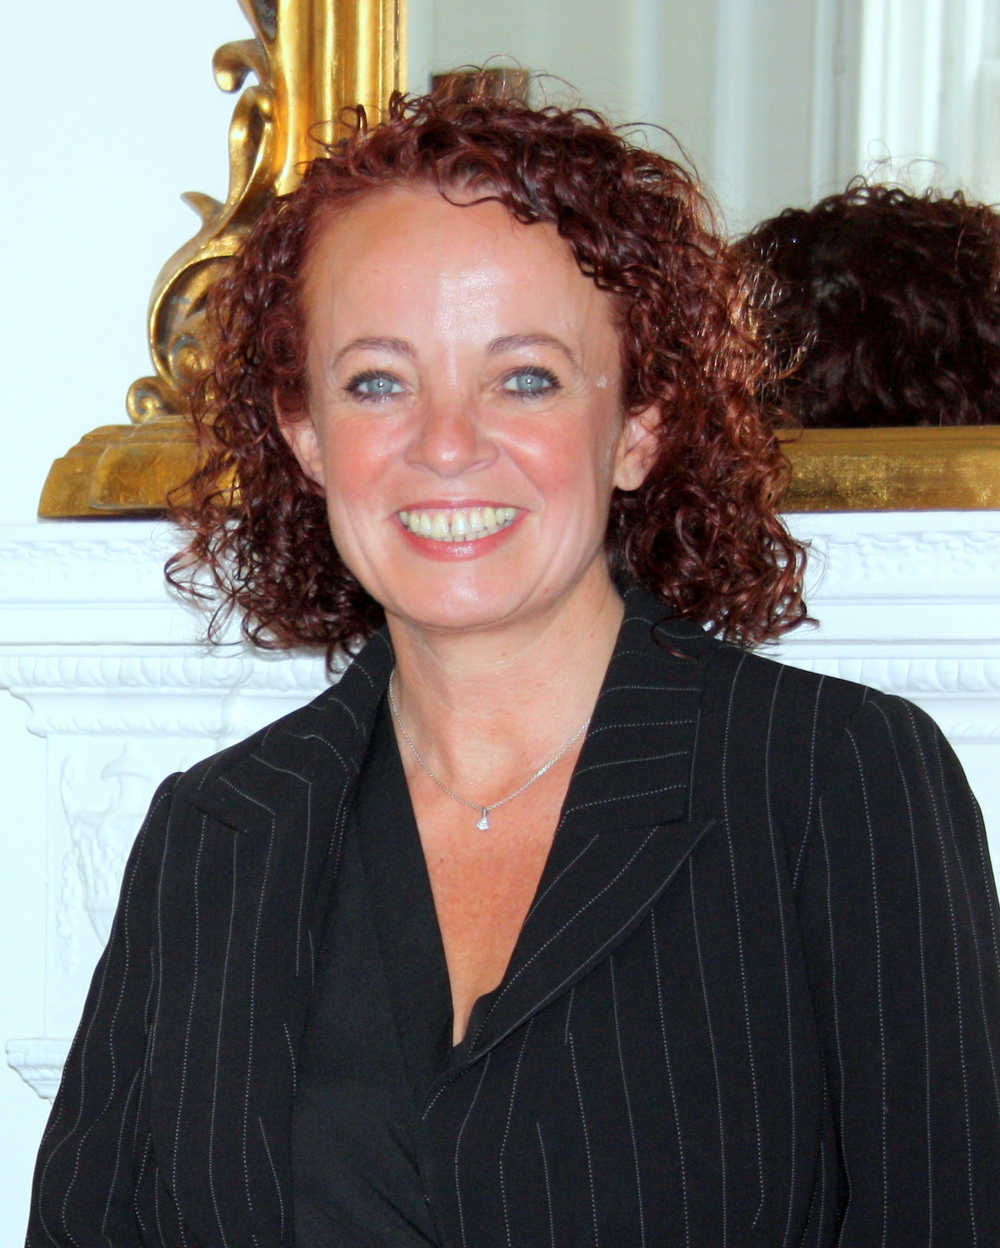 Managing Director of Astute Recruitment, Mary Maguire.